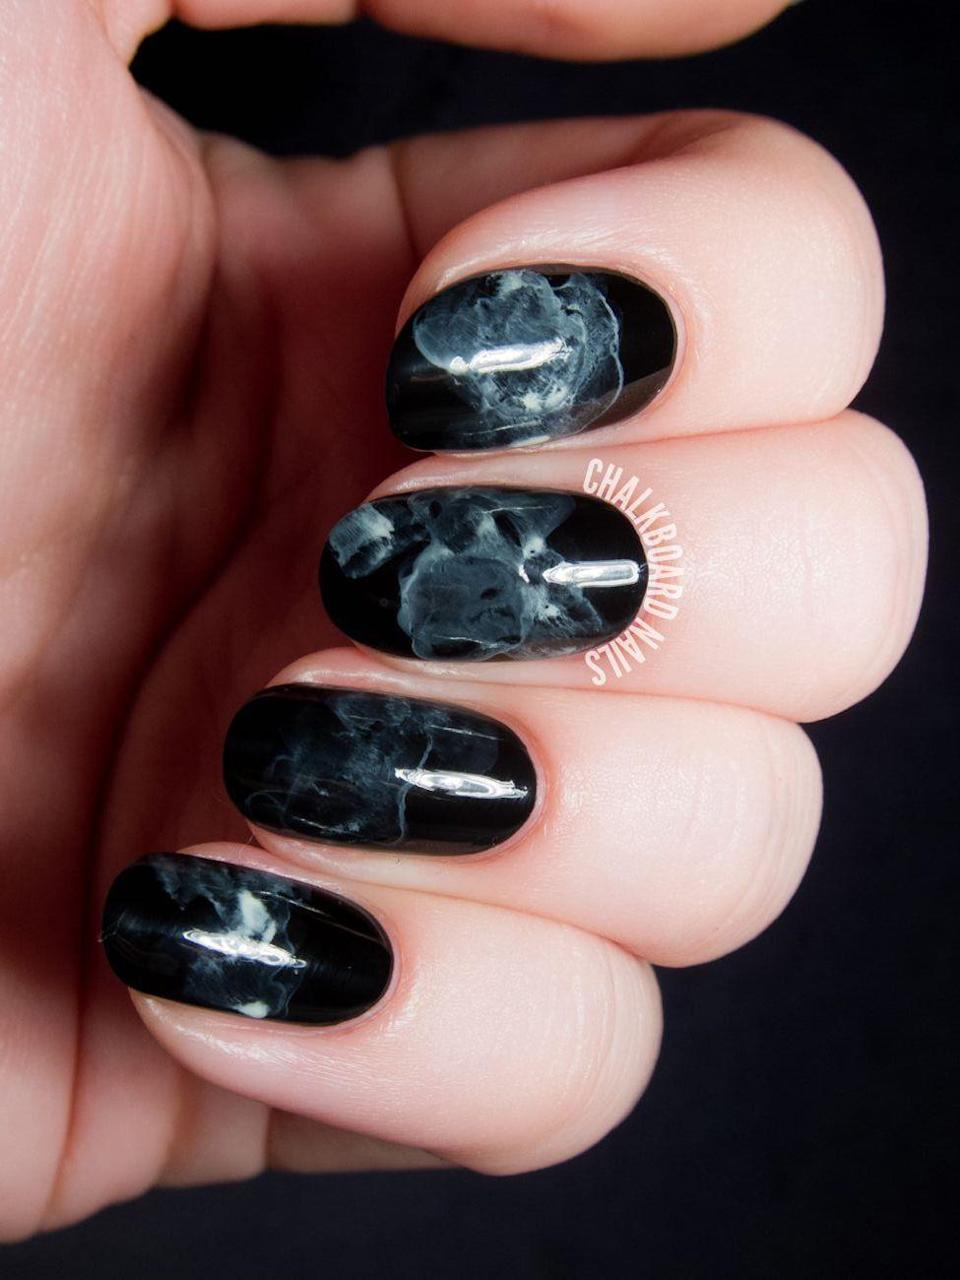 "<p>Glossy, dark, and super mysterious — everyone will be asking where you got your nails done with this eerie manicure. </p><p><em><a href=""http://www.chalkboardnails.com/2014/10/midnight-smoke-nail-art-tutorial.html"" rel=""nofollow noopener"" target=""_blank"" data-ylk=""slk:Get the tutorial at Chalkboard Nails »"" class=""link rapid-noclick-resp"">Get the tutorial at Chalkboard Nails »</a></em></p>"